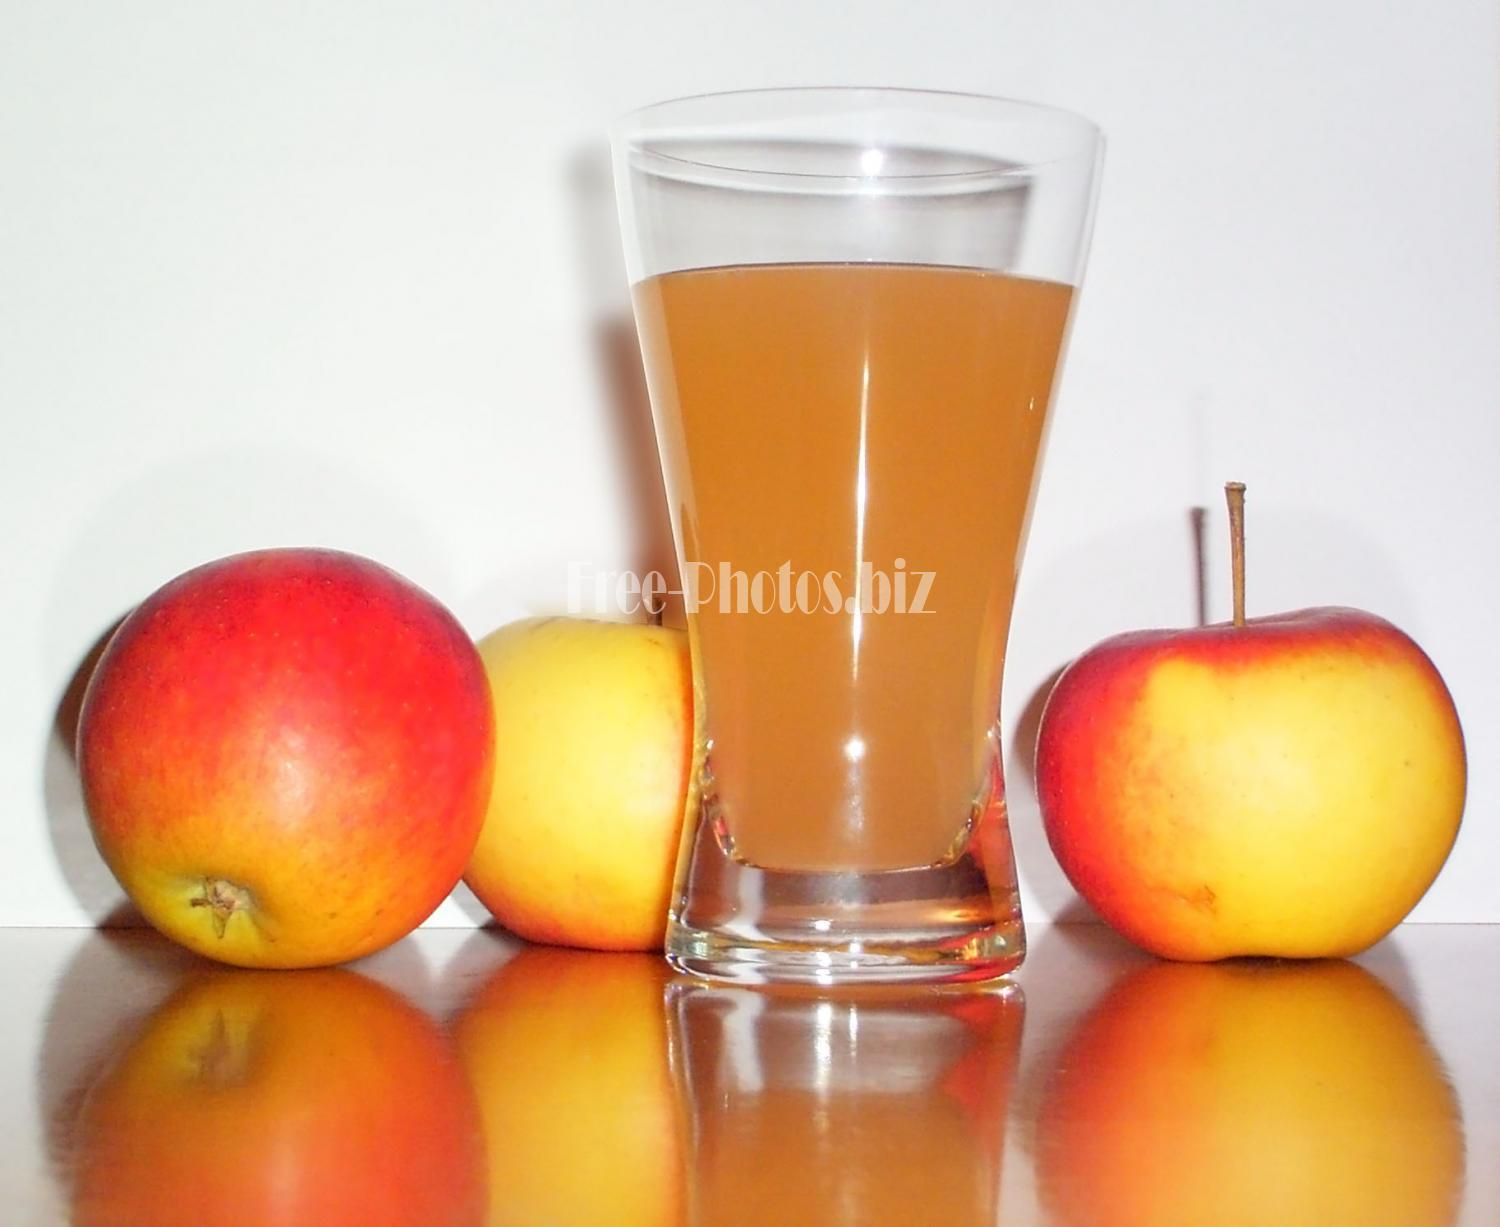 Apple juice with 3 apples